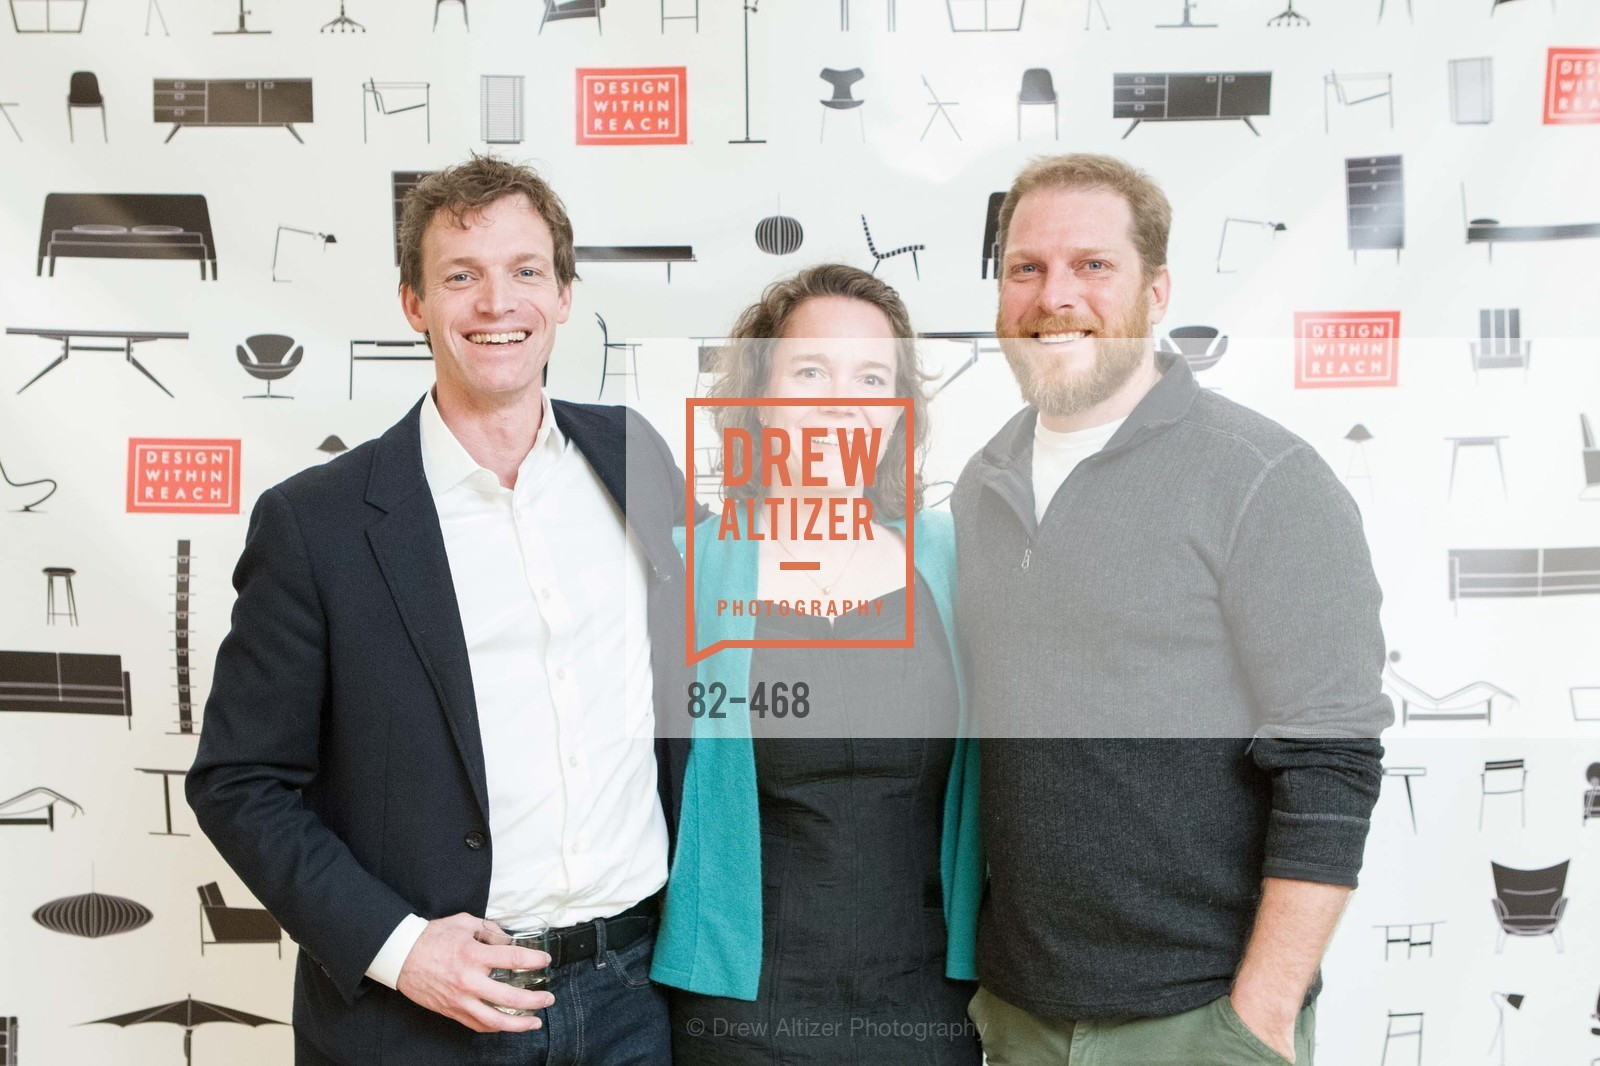 Mark Simmons, Lisa Clossey, Tom Clossey, DESIGN WITHIN REACH Studio Opening, US. US, January 21st, 2014,Drew Altizer, Drew Altizer Photography, full-service agency, private events, San Francisco photographer, photographer california